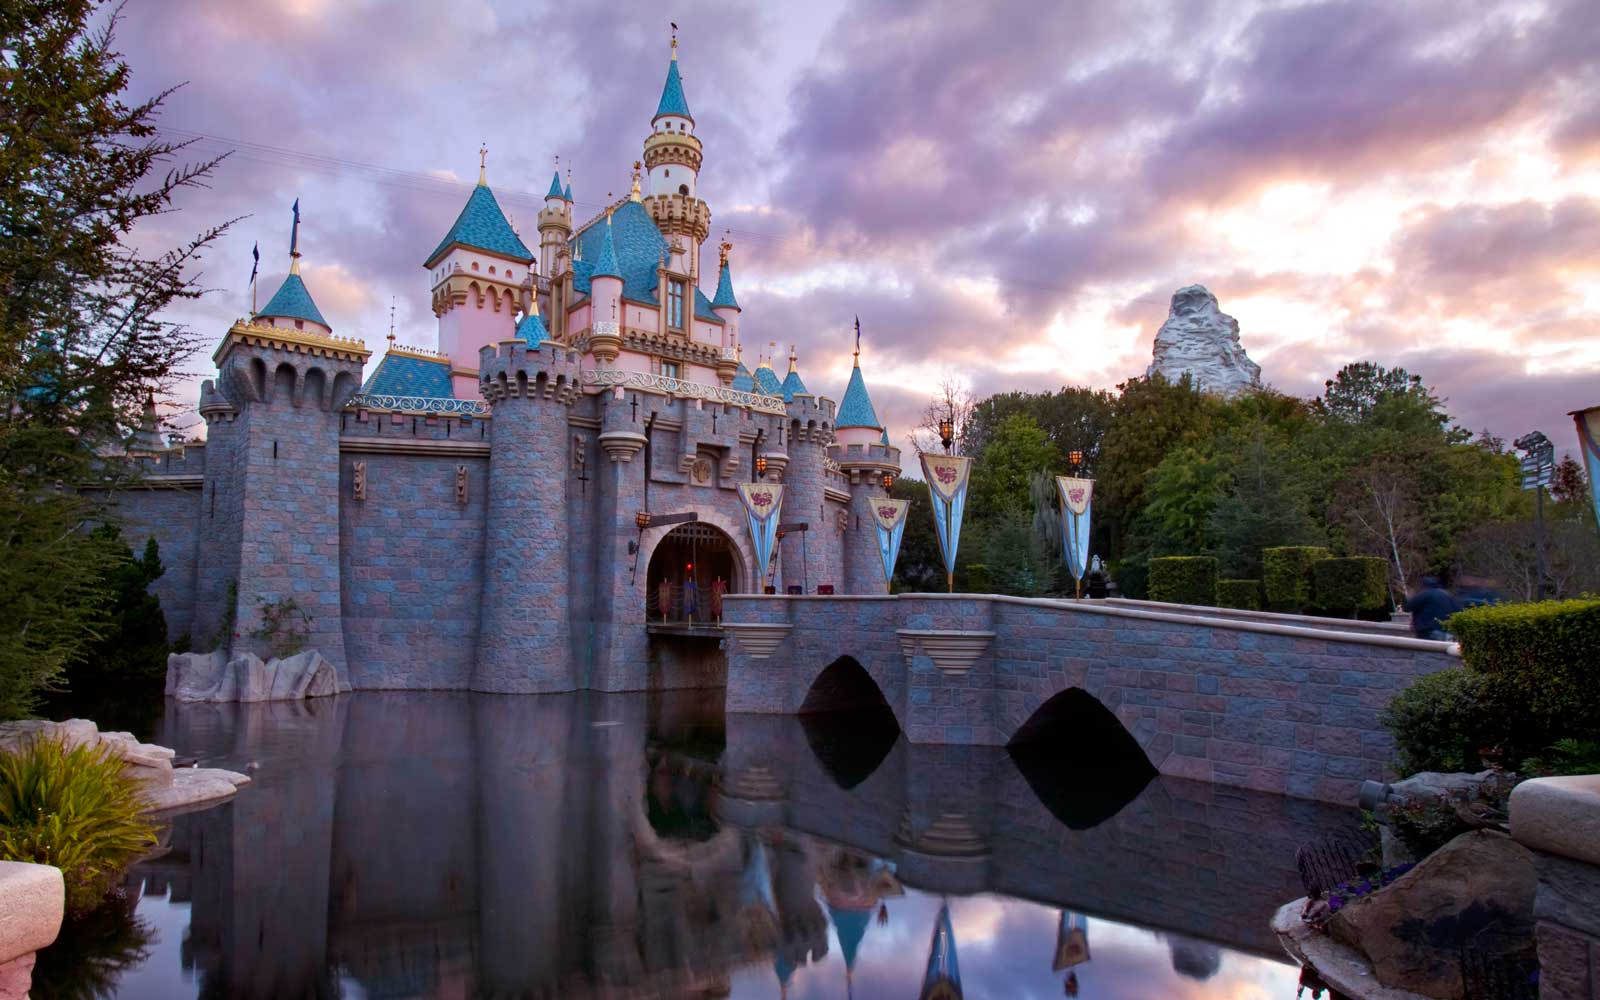 Disneyland, Anaheim California